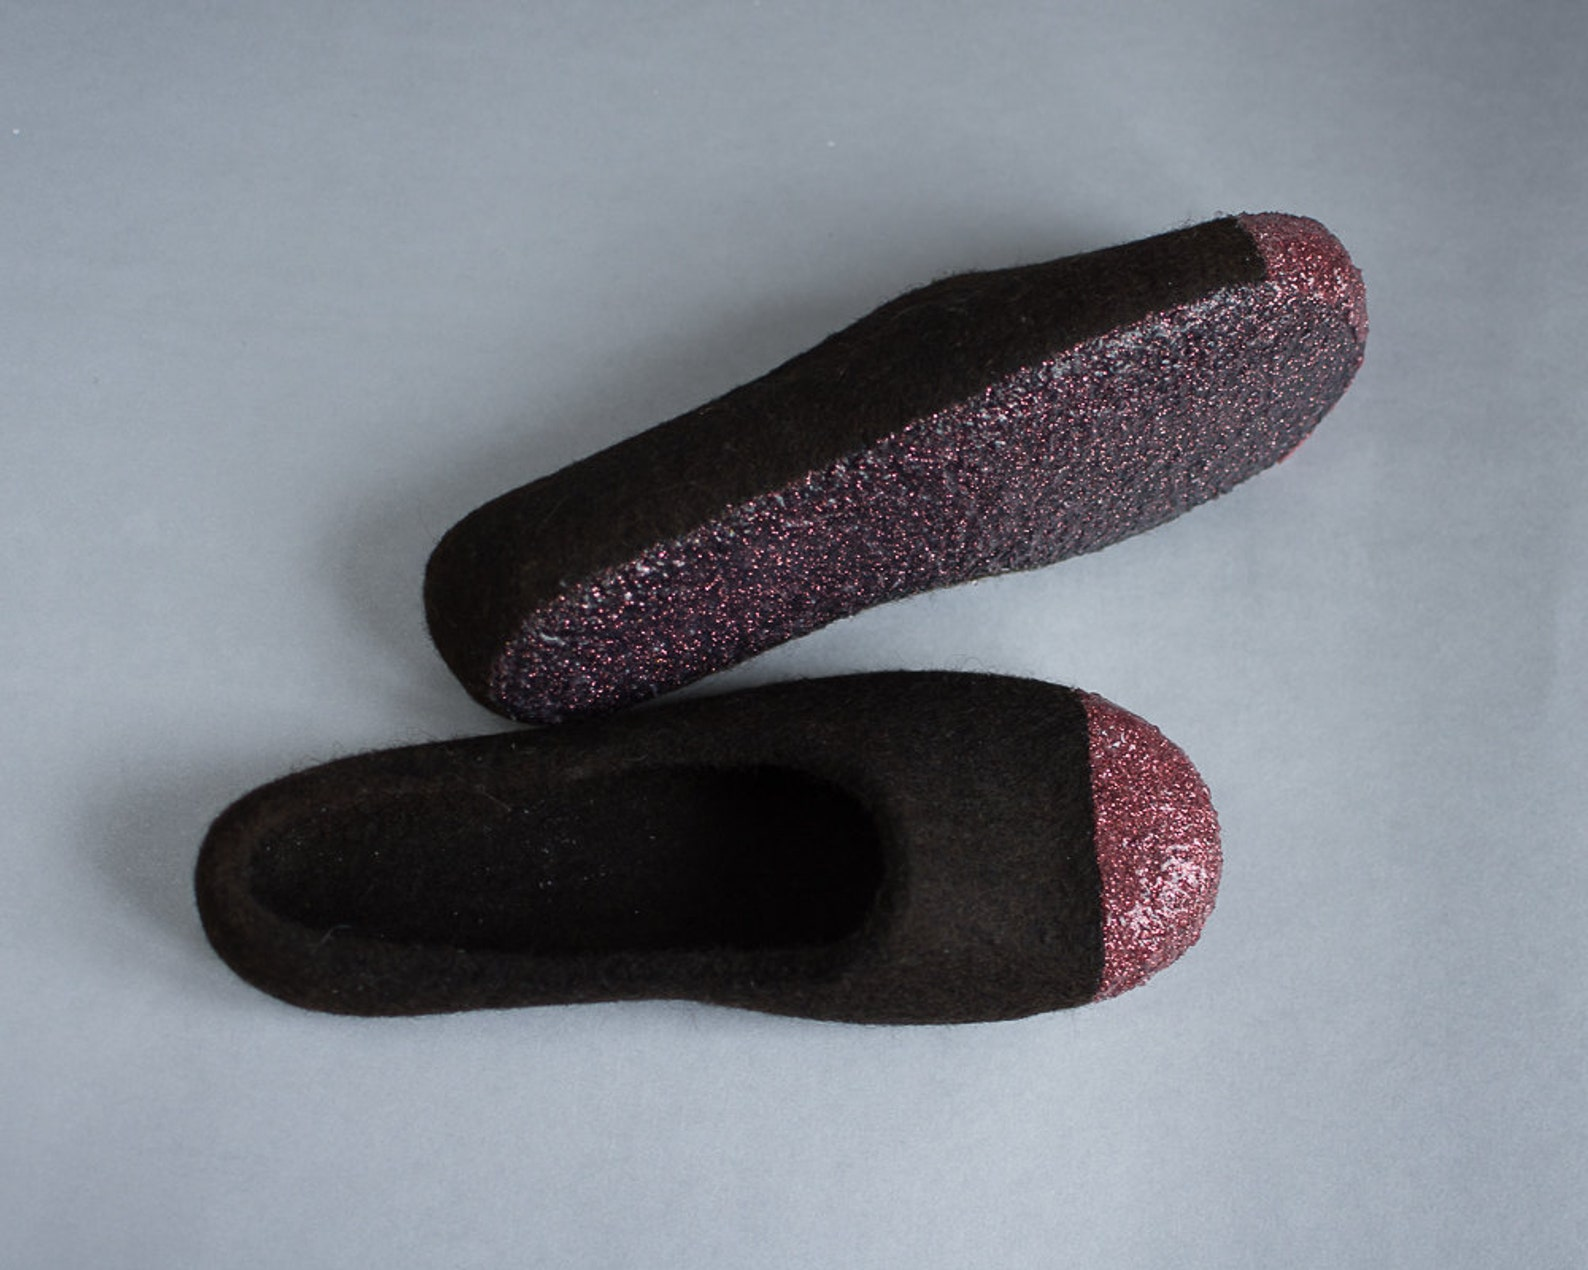 women felt slippers - dark brown slippers - glitter slippers - felted ballet flats - tirol wool slippers - red bronze slippers -